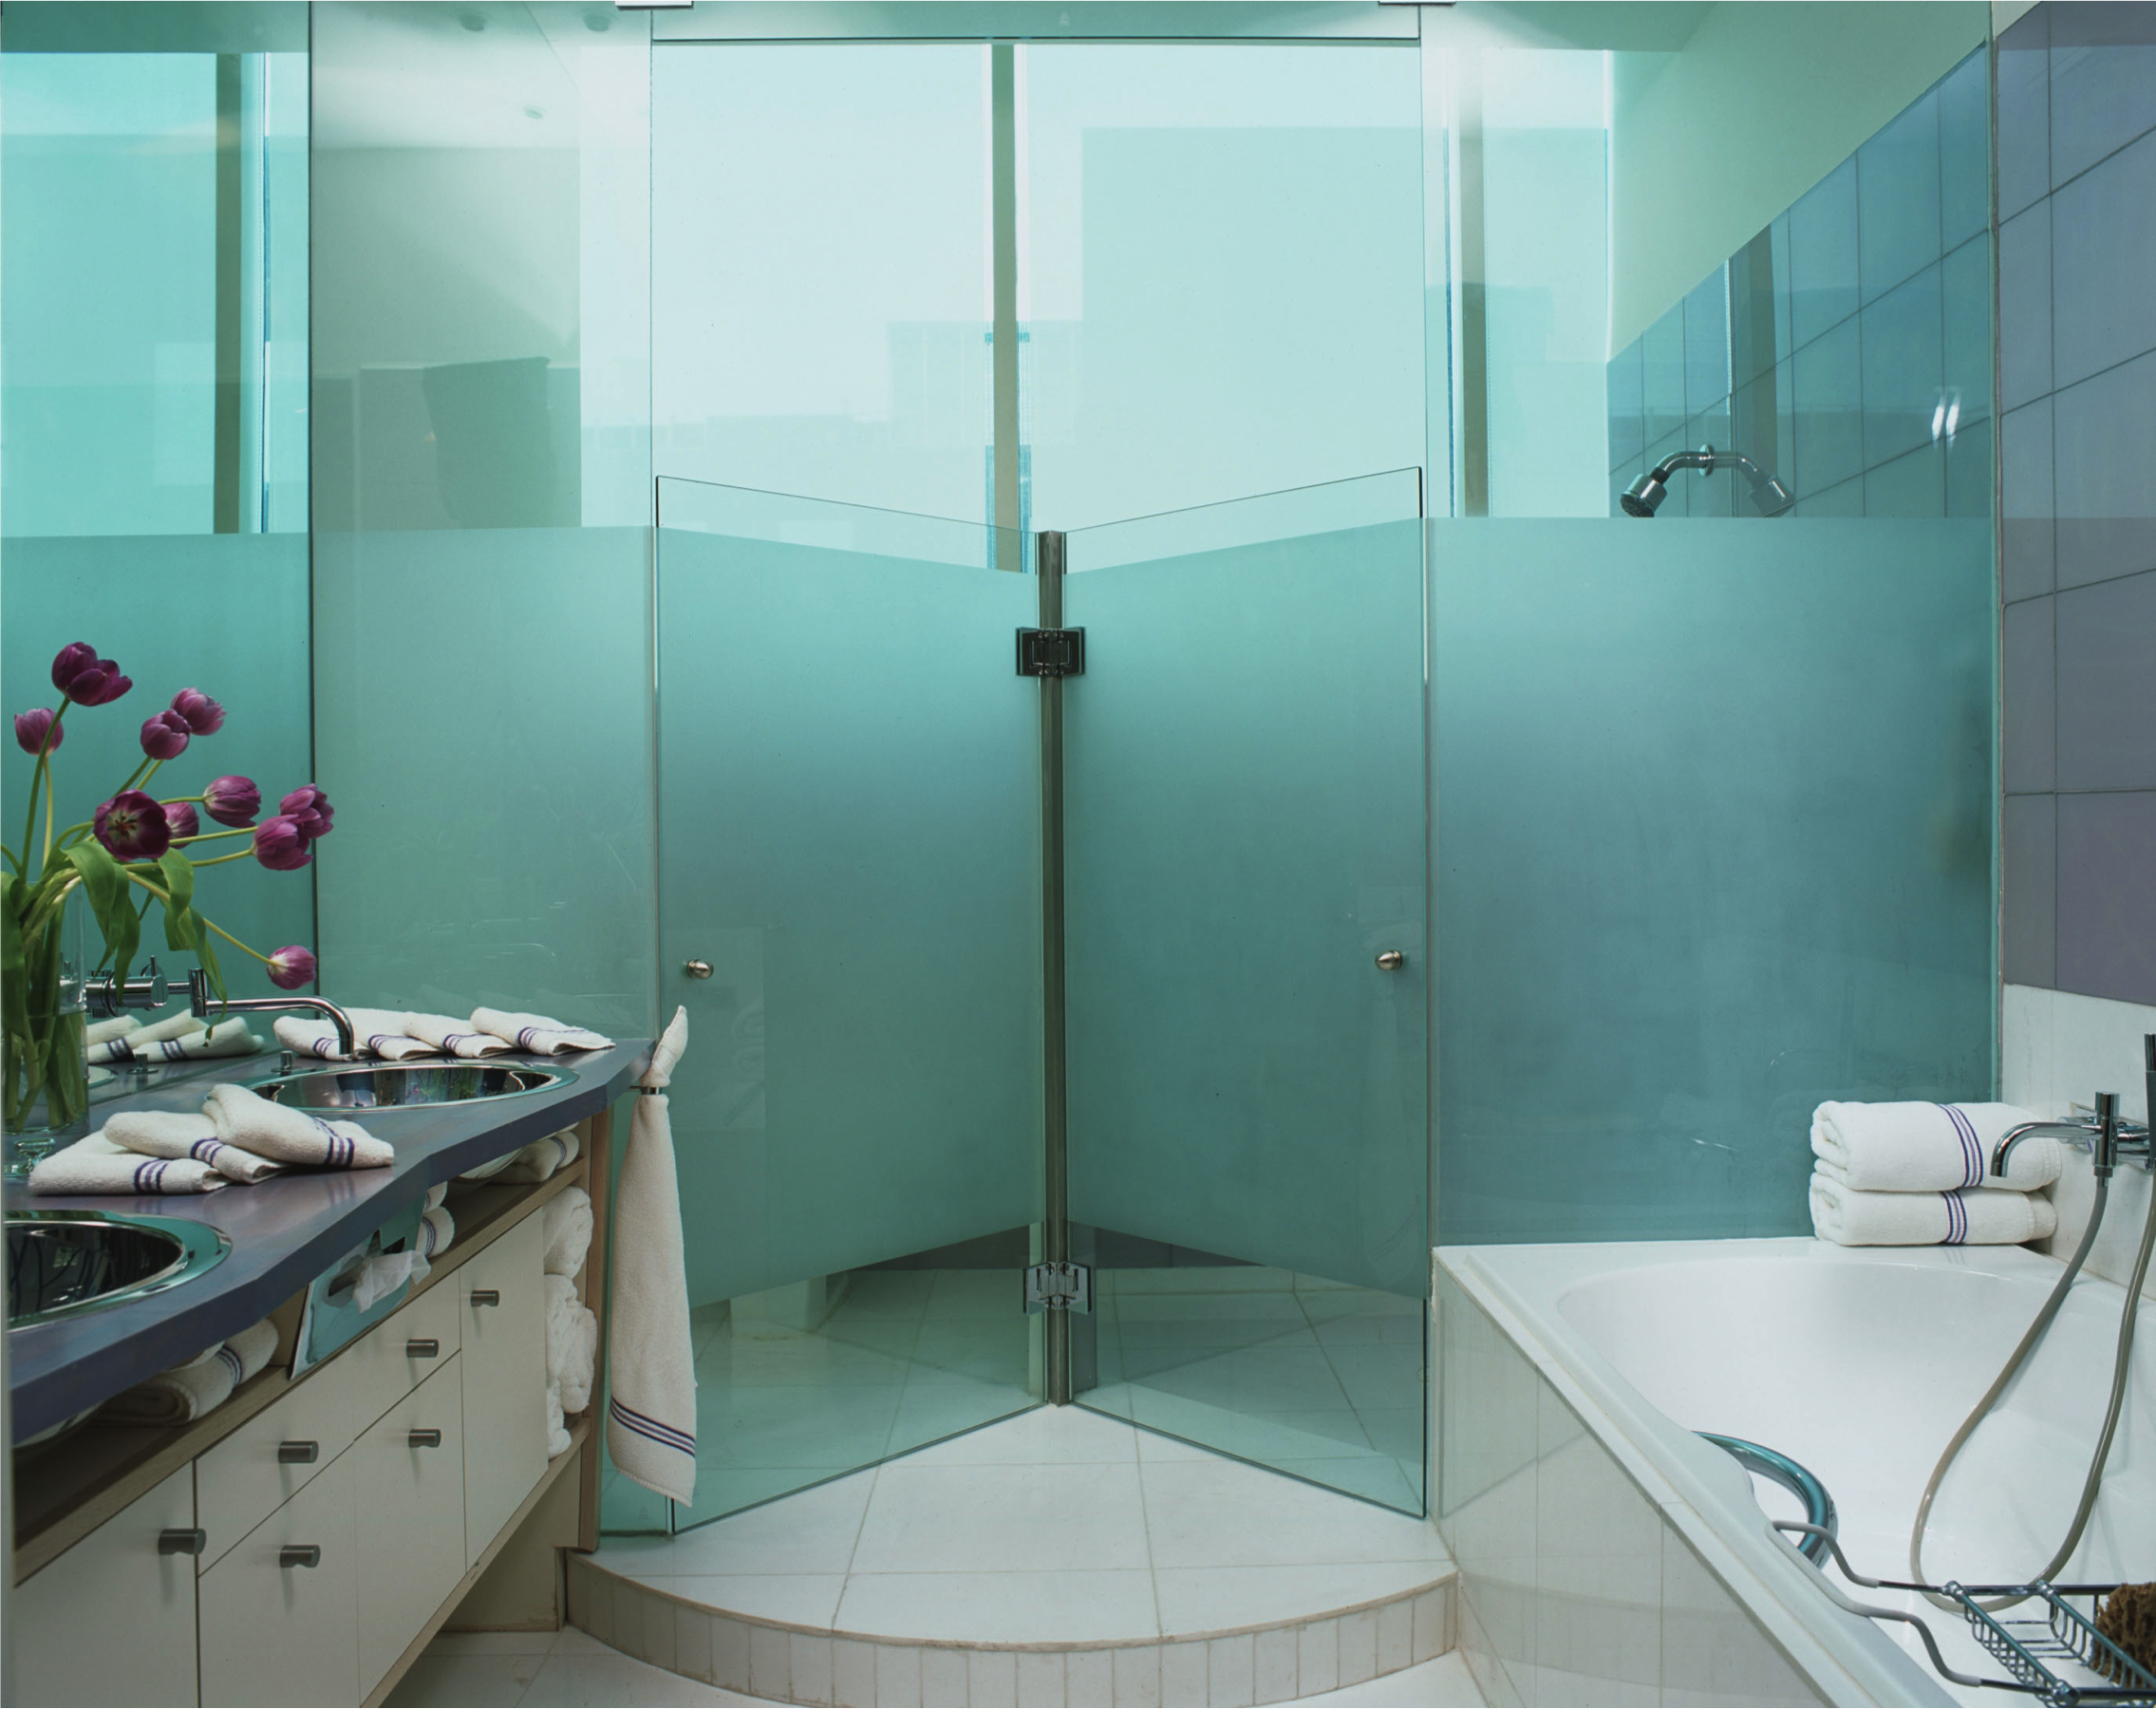 Another bathroom has dual showers enclosed in frosted glass. The soaking tub has purple striped towels that match the purple counters.